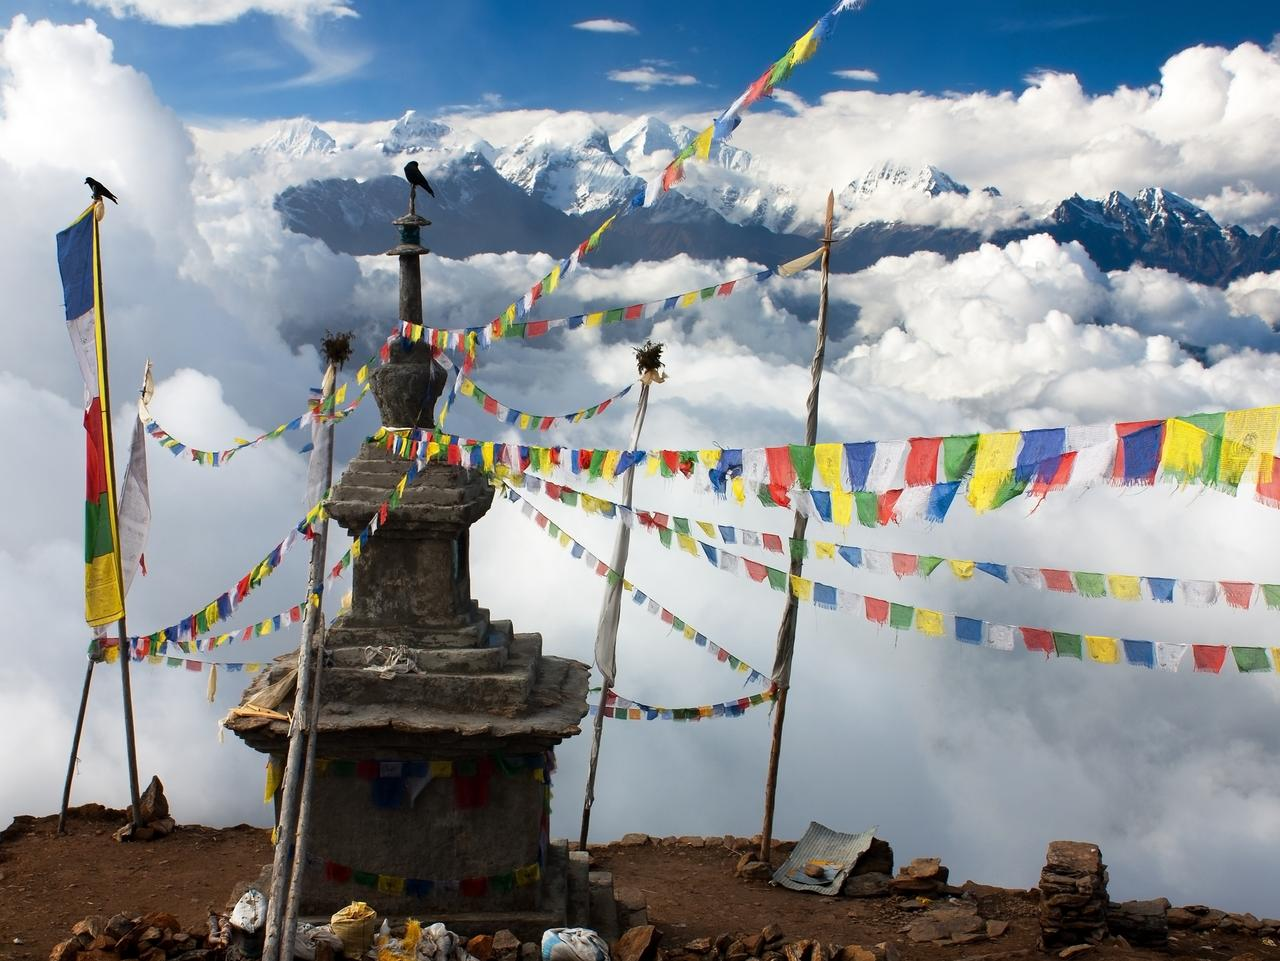 The Himalayas are intensely spiritual, with Buddhist monuments everywhere.